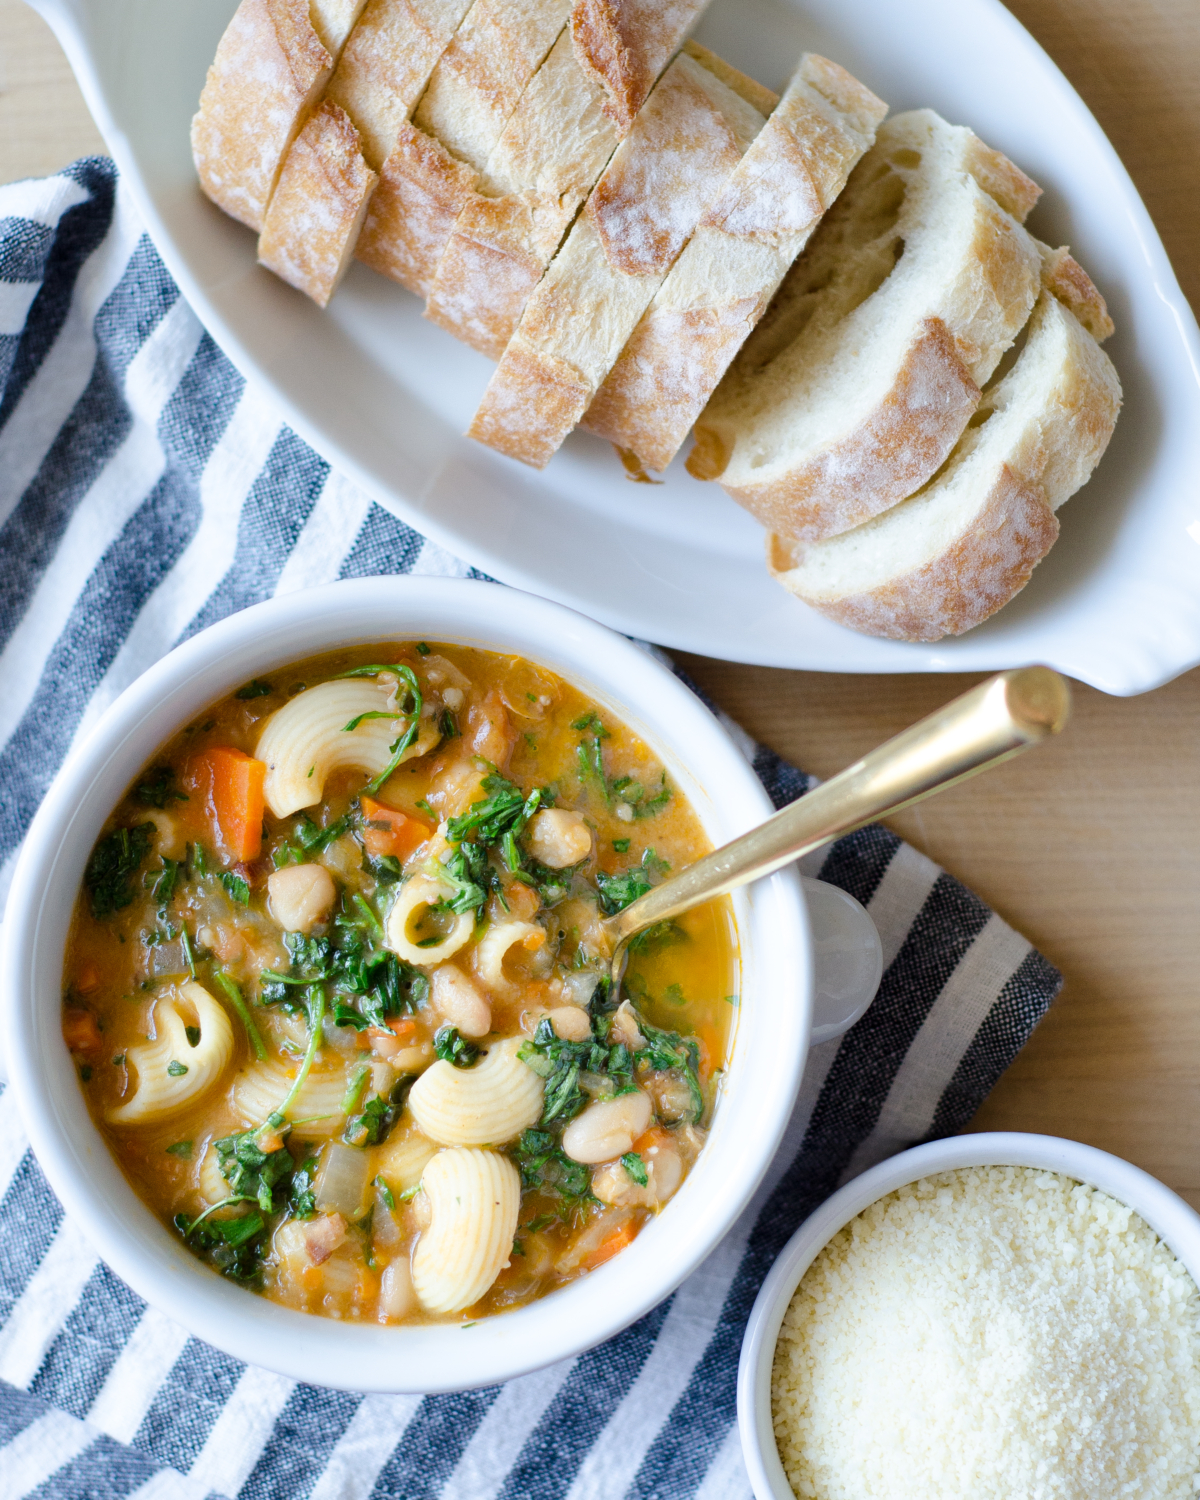 Easy and healthy Italian bean soup recipe (pasta e fagioli) filled with vegetables, beans, and pasta. Great one pot meal made with pantry staples.